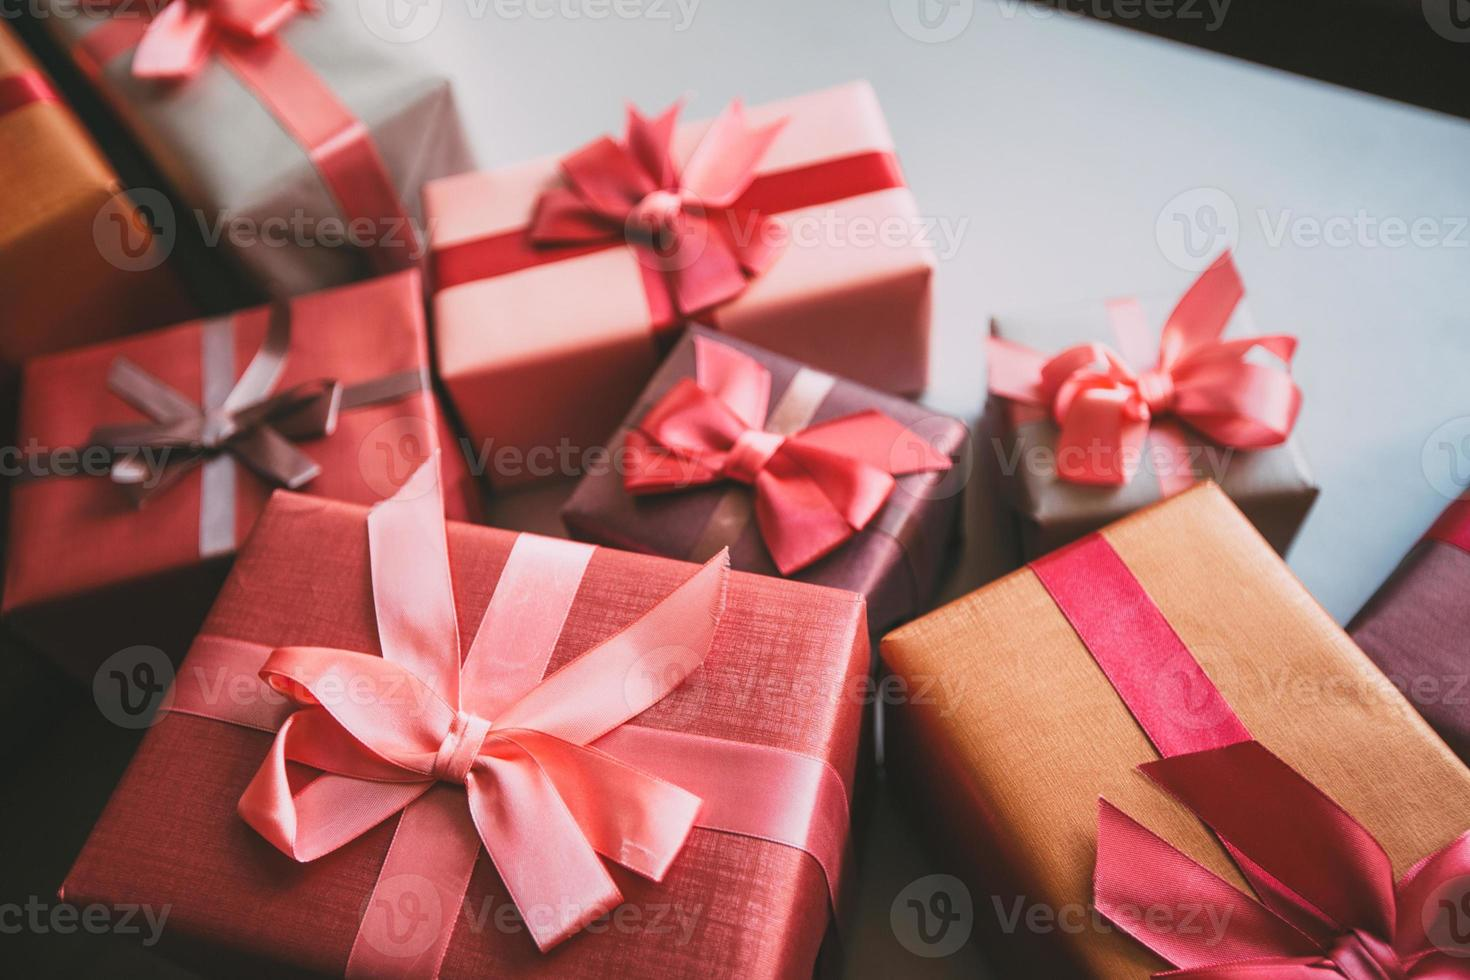 Boxes with gifts. photo